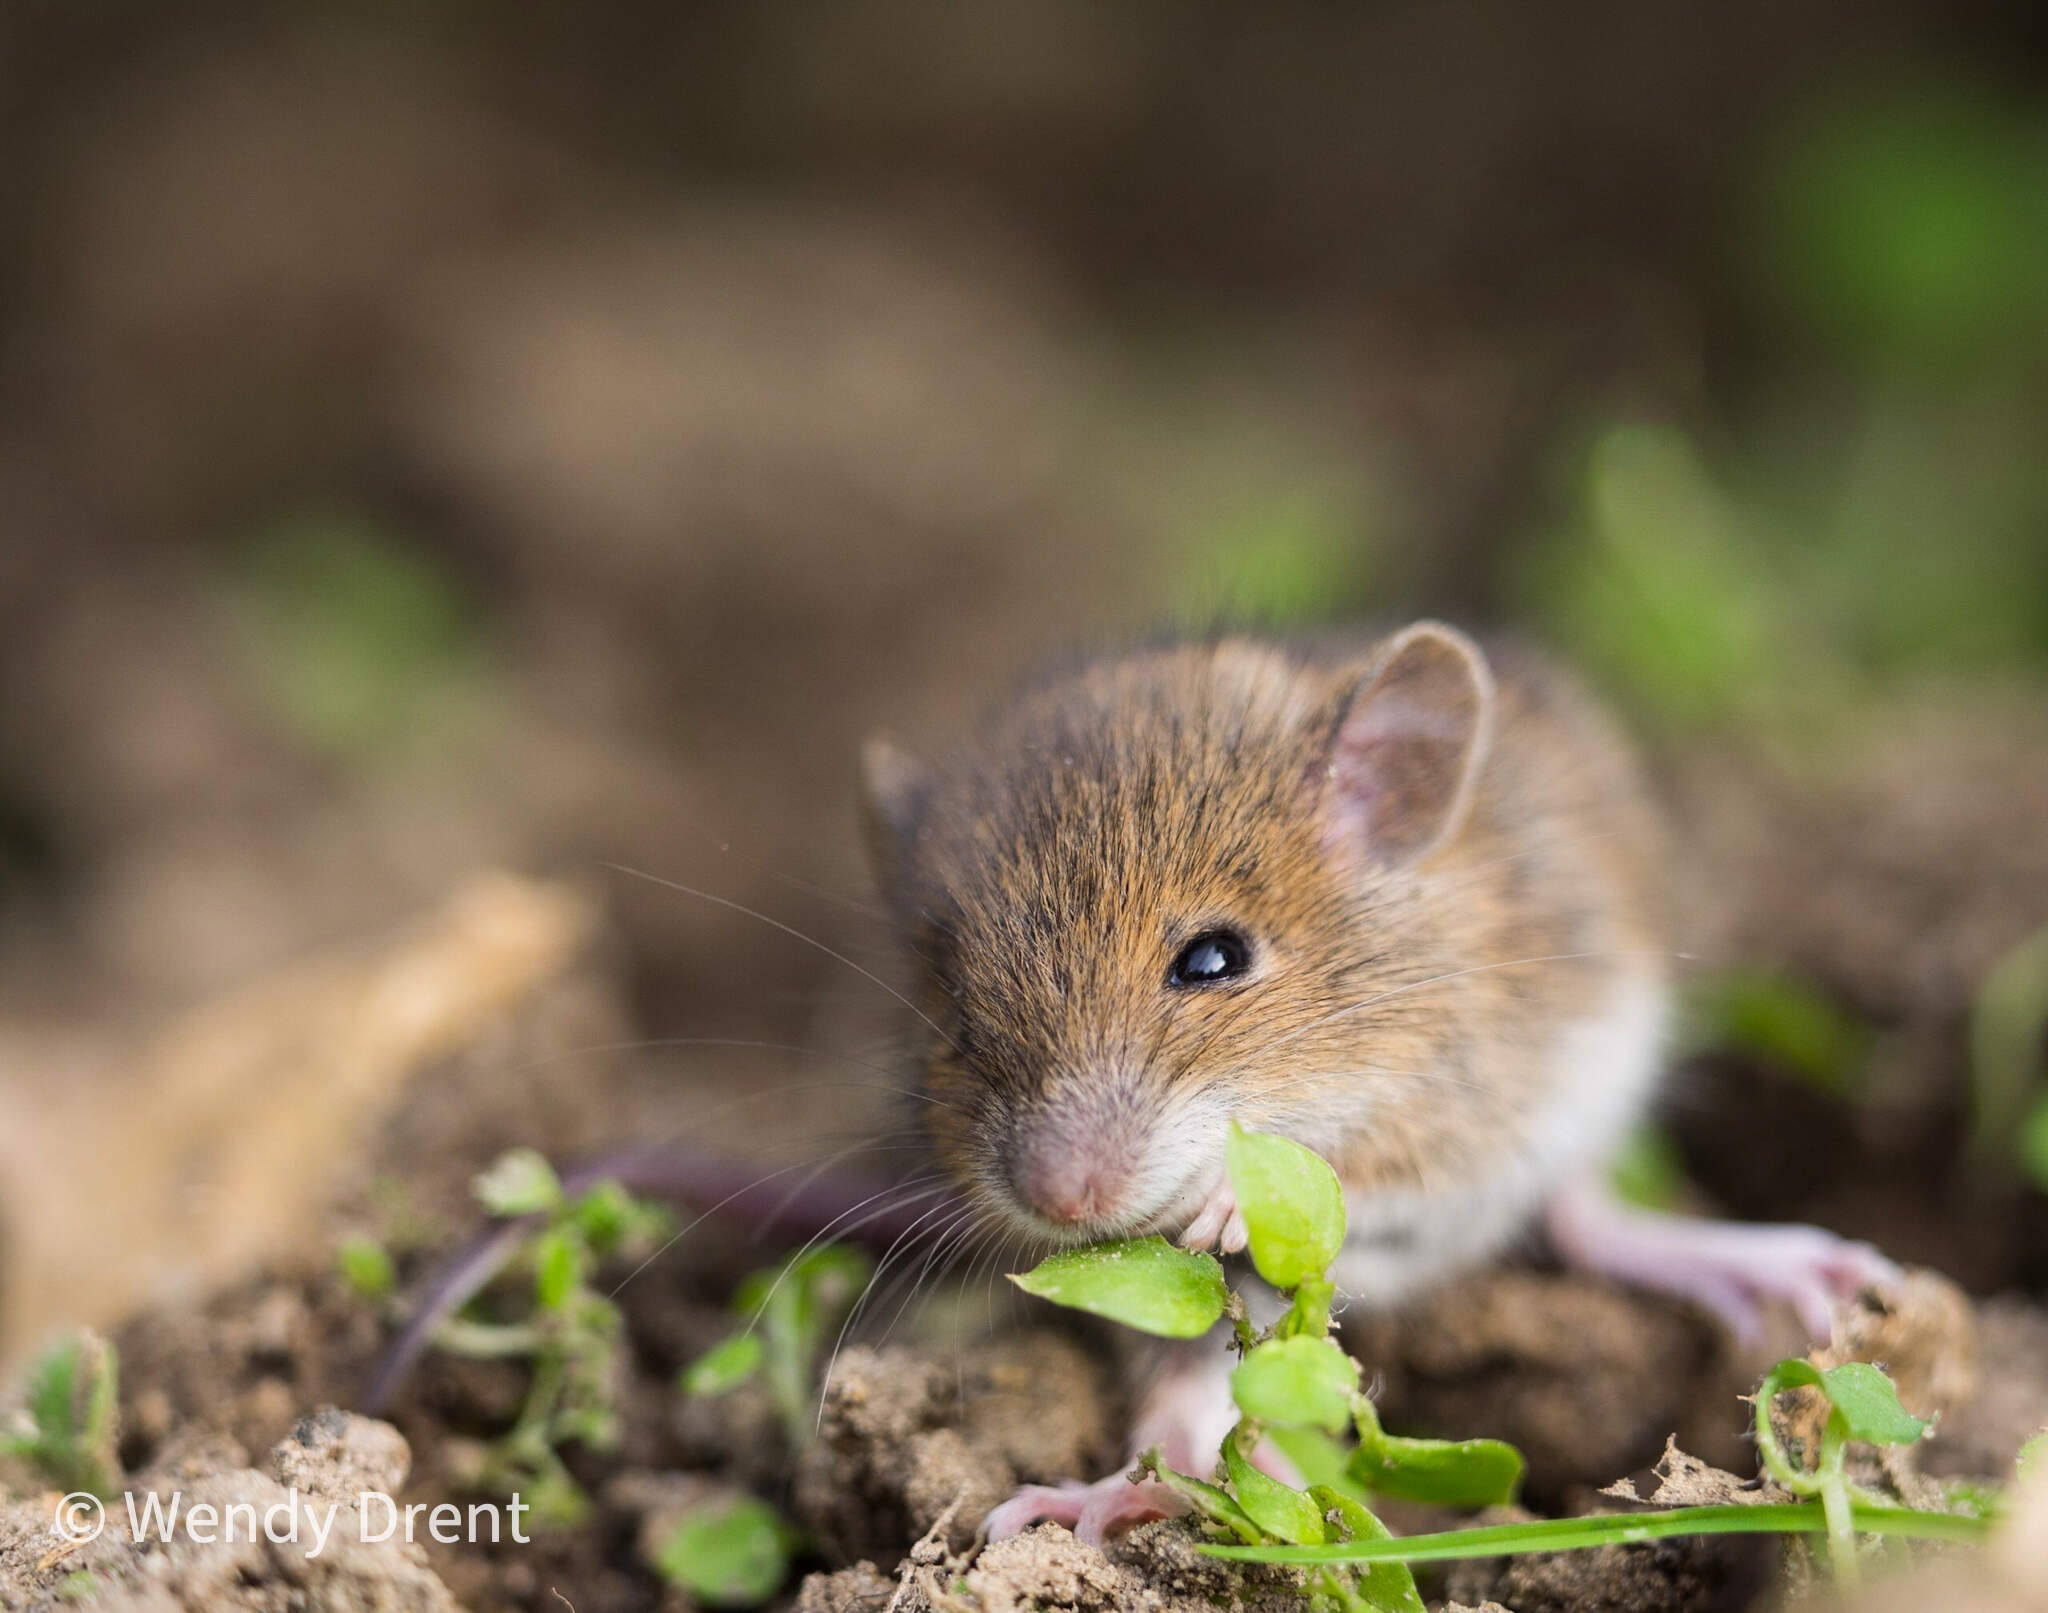 mouse, muis, wendy drent, zoogdier, cute animal, naturephotography, olympusomd